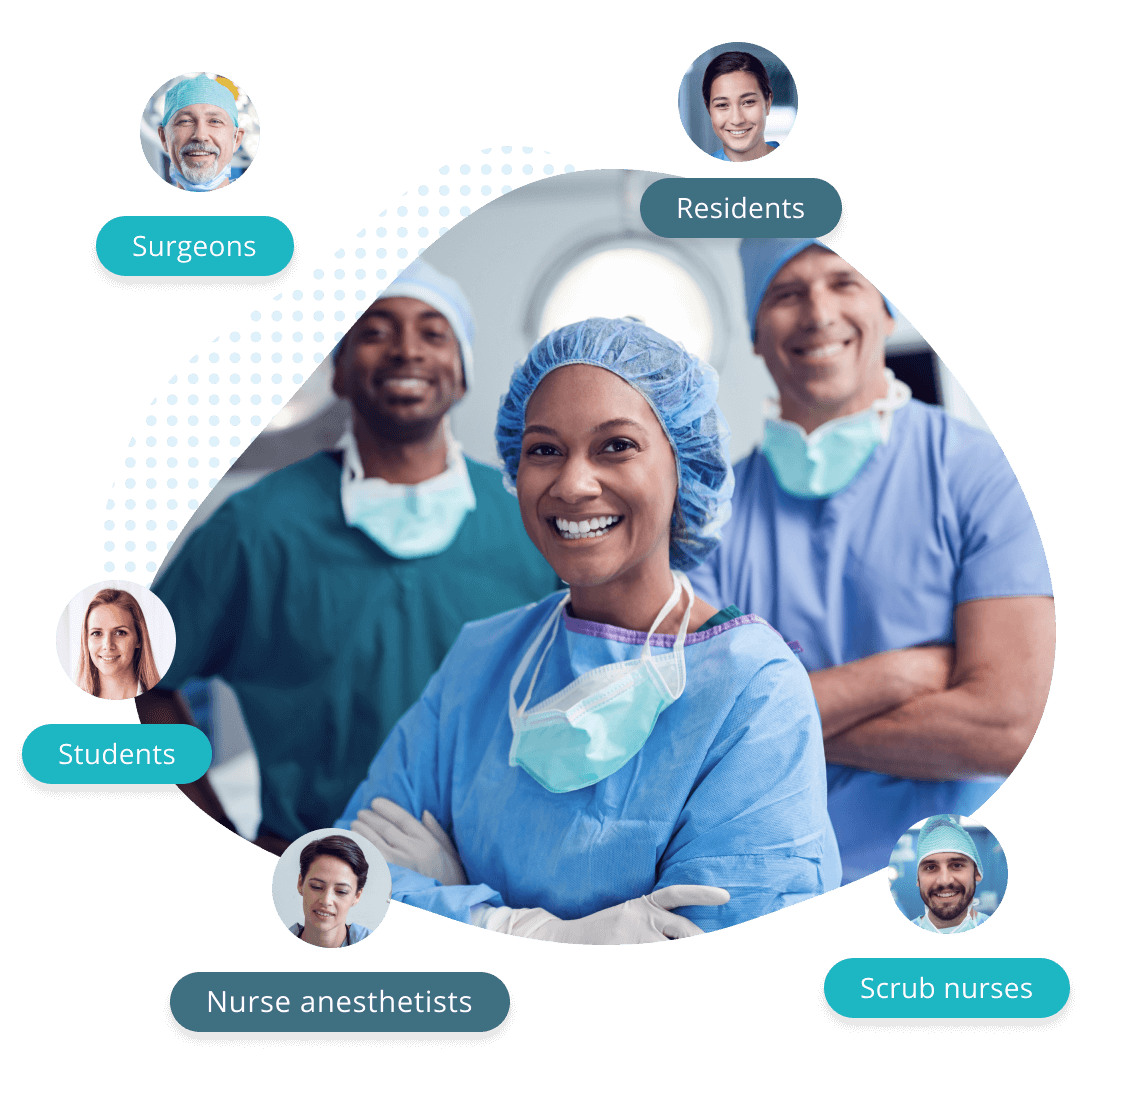 OR team in operating room composited visual with surgeons residents  stidents nurse anesthetists scrub nurses